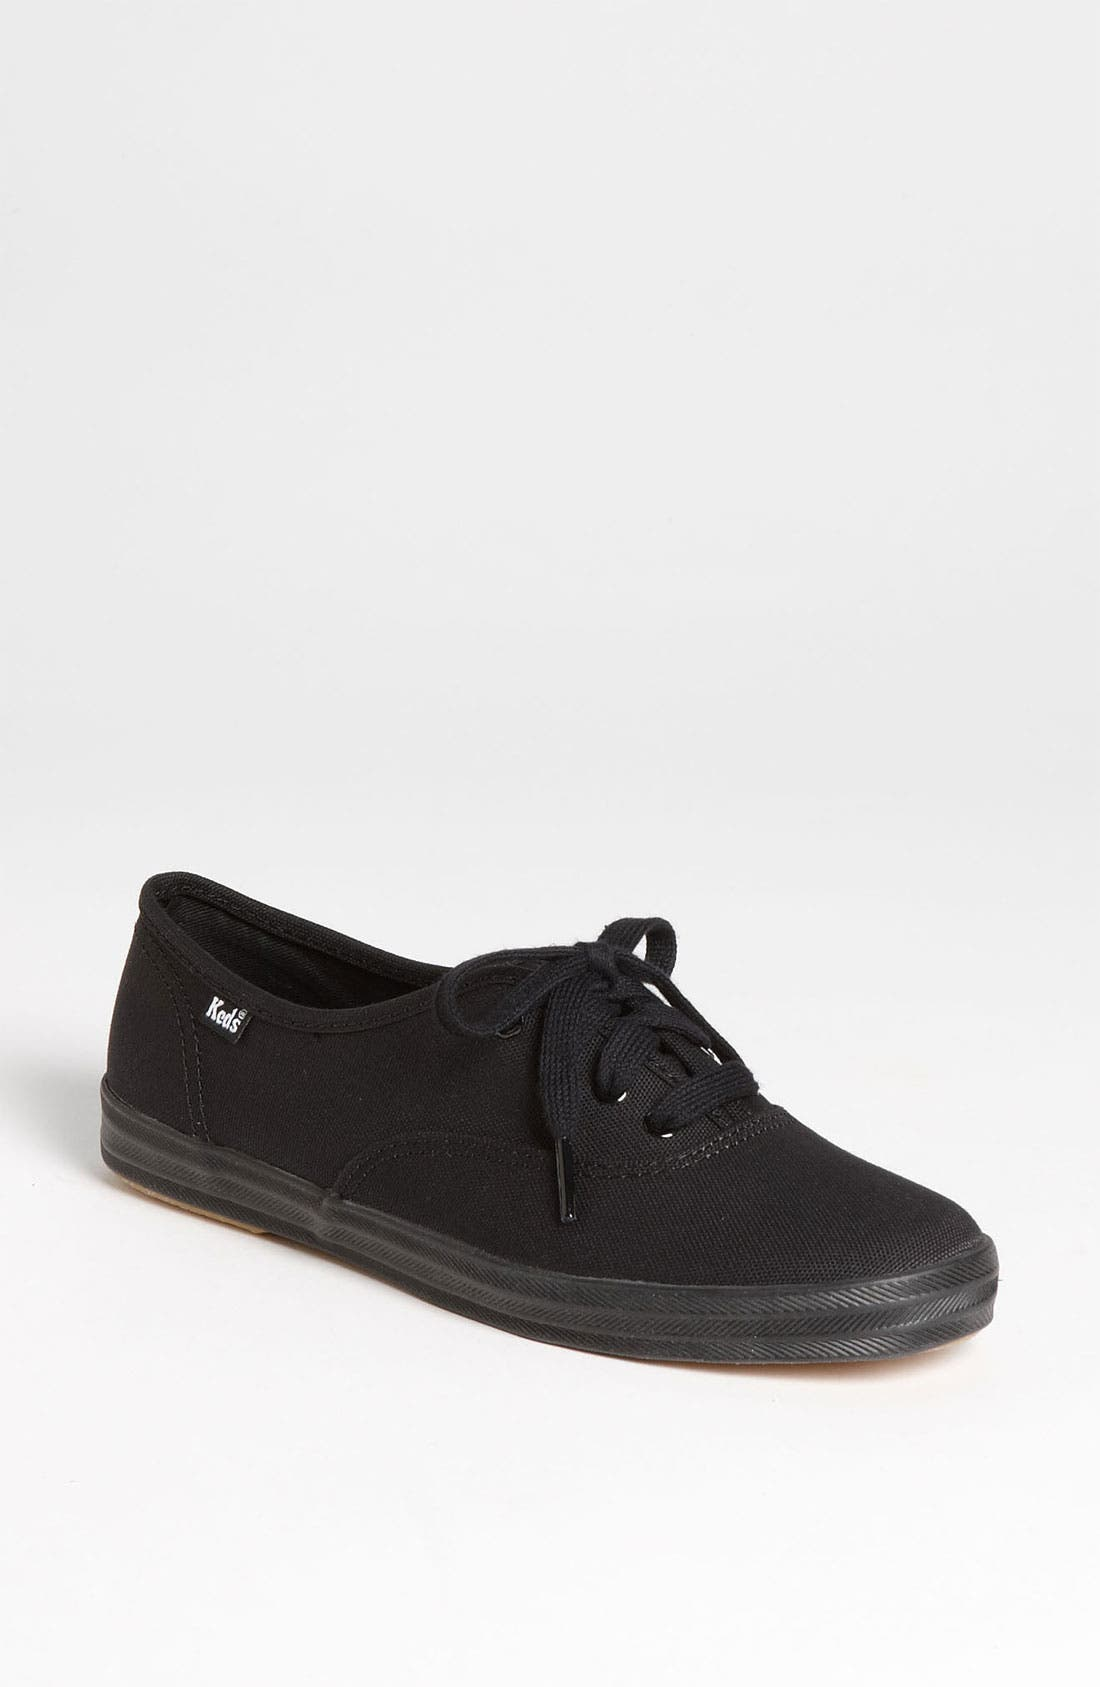 KEDS<SUP>®</SUP> Champion Canvas Sneaker